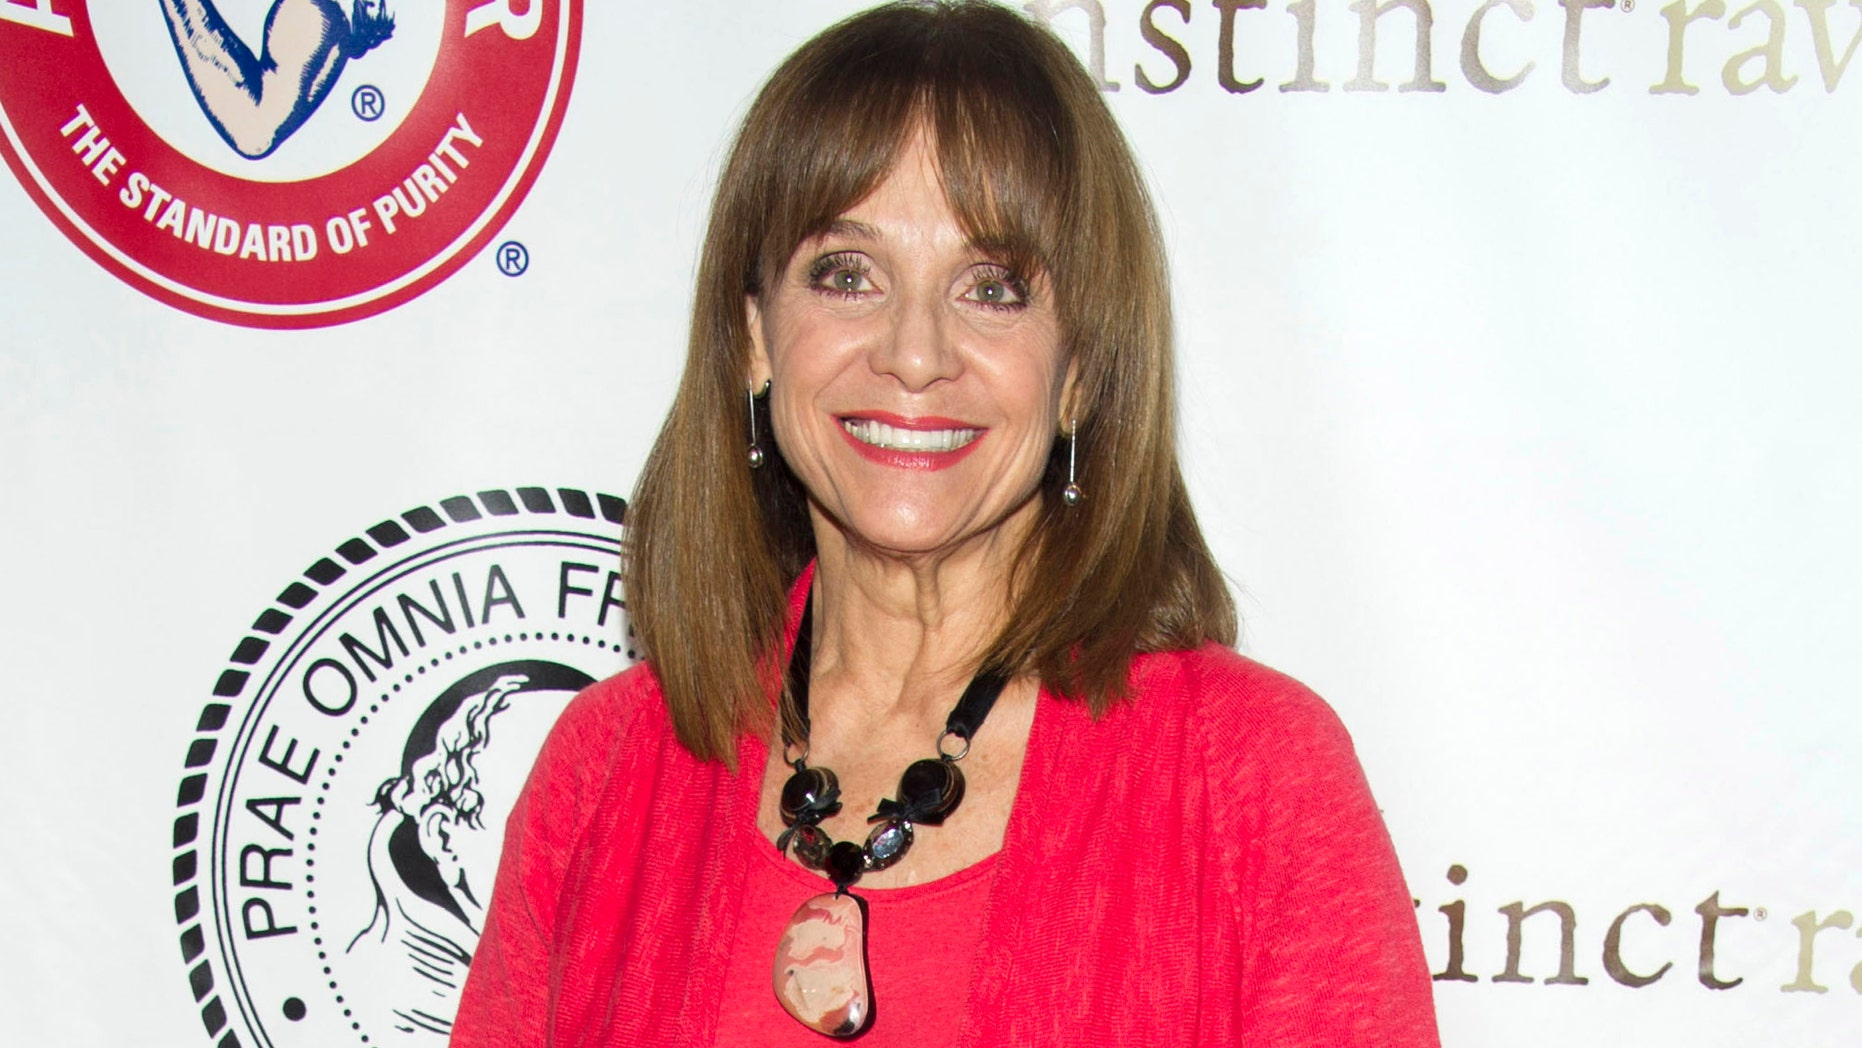 This May, 16, 2012 file photo shows actress Valerie Harper at the Friars Club Roast of Betty White in New York. (AP Photo/Charles Sykes, File)